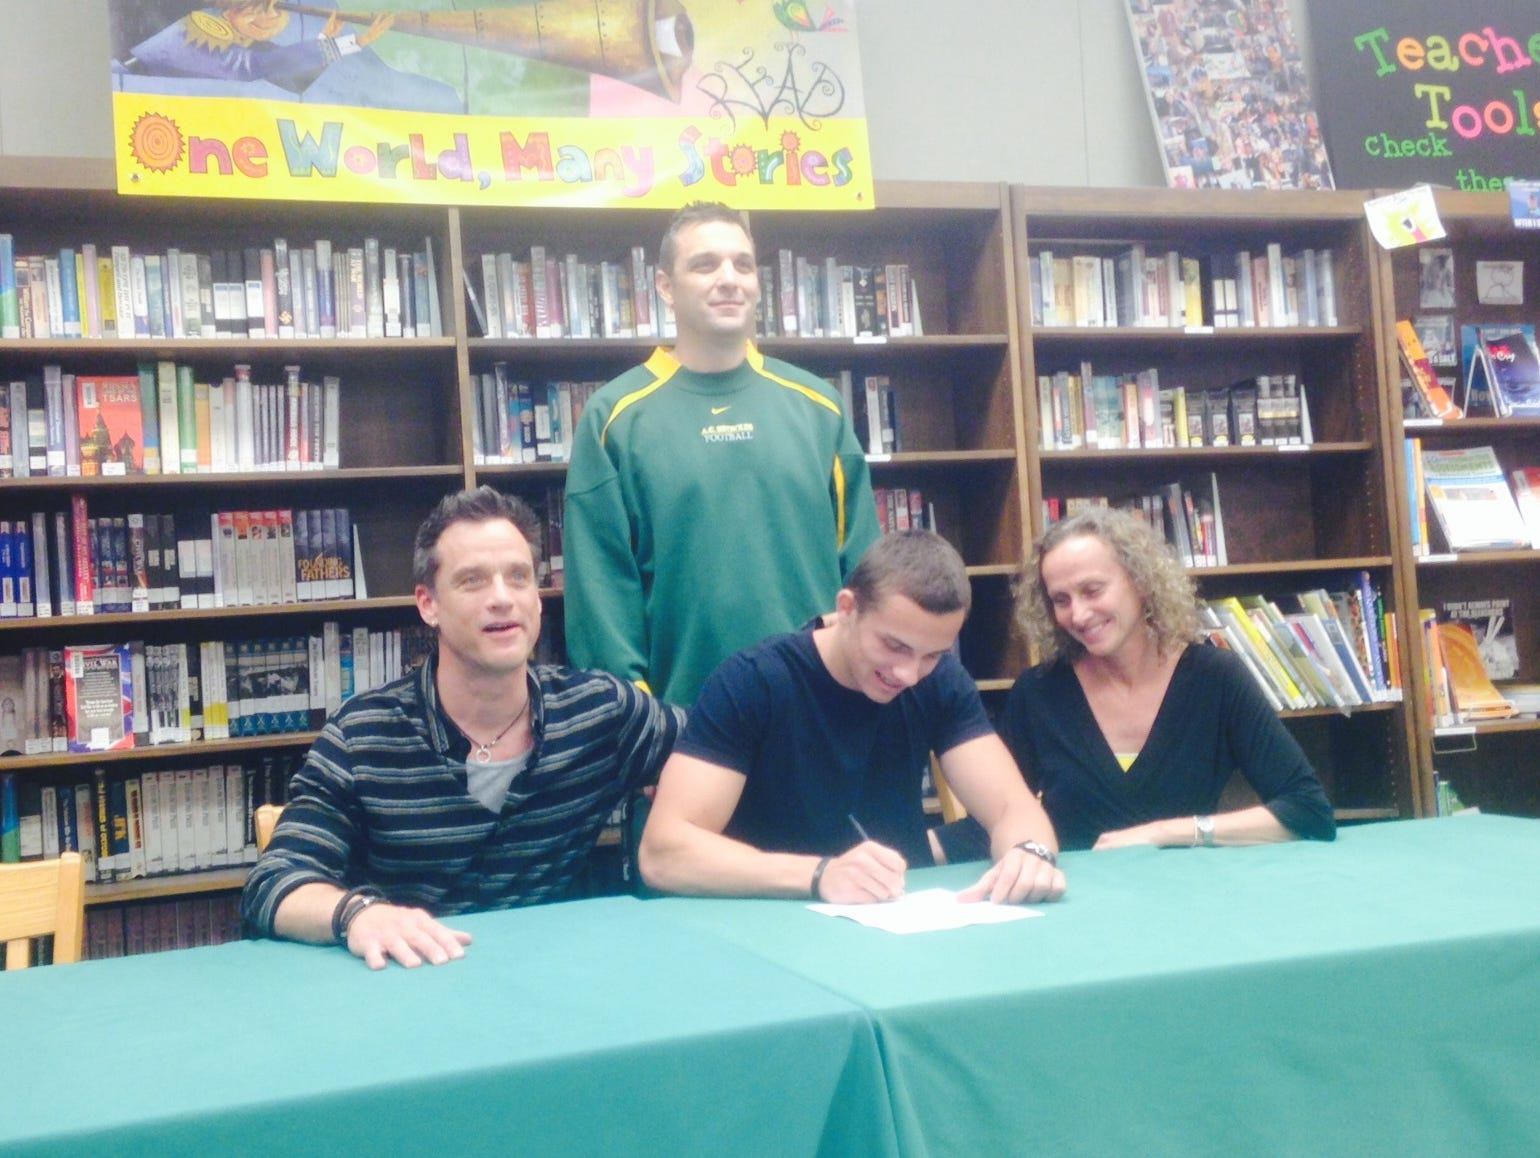 Reynolds senior Stone Fentzlaff has signed to play college football for Centre (Ky.).